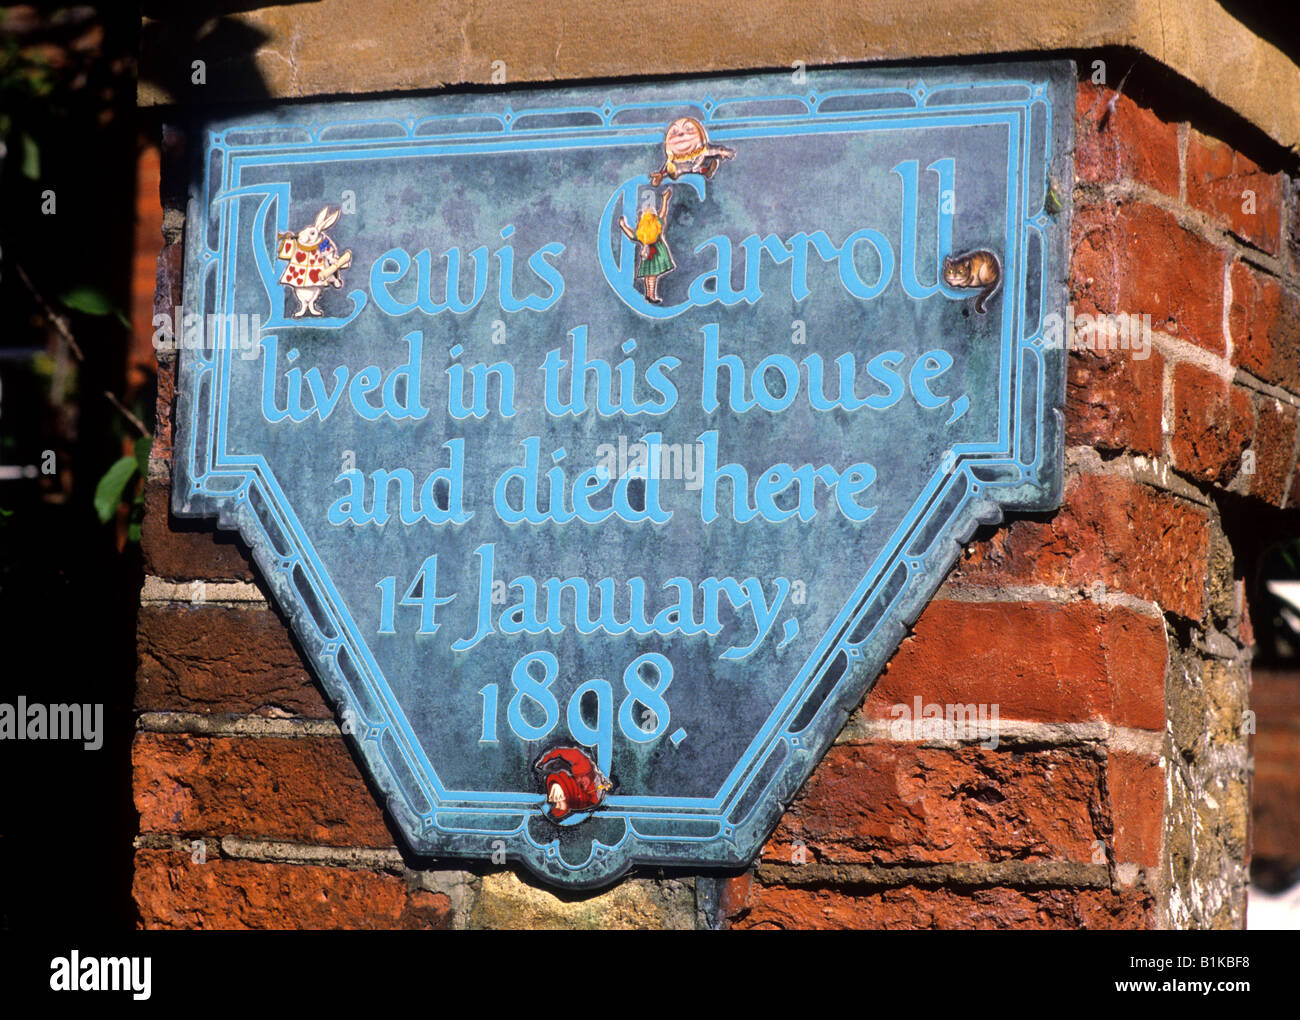 Guildford Lewis Carroll's House Plaque Alice in Wonderland English Author Carroll lived died here 1898 Surrey - Stock Image